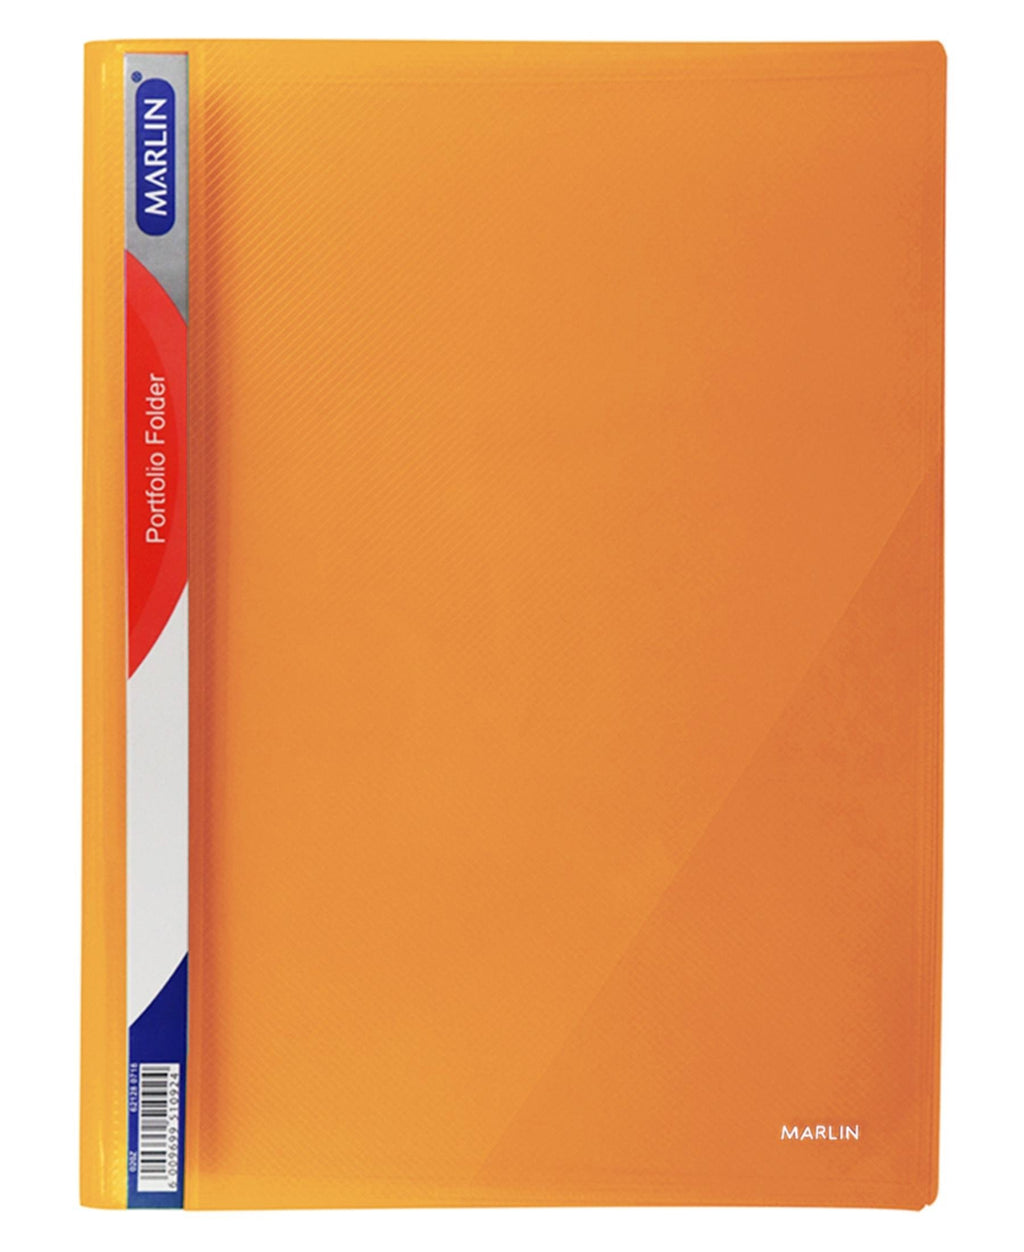 Marlin Portfolio Folder - Orange